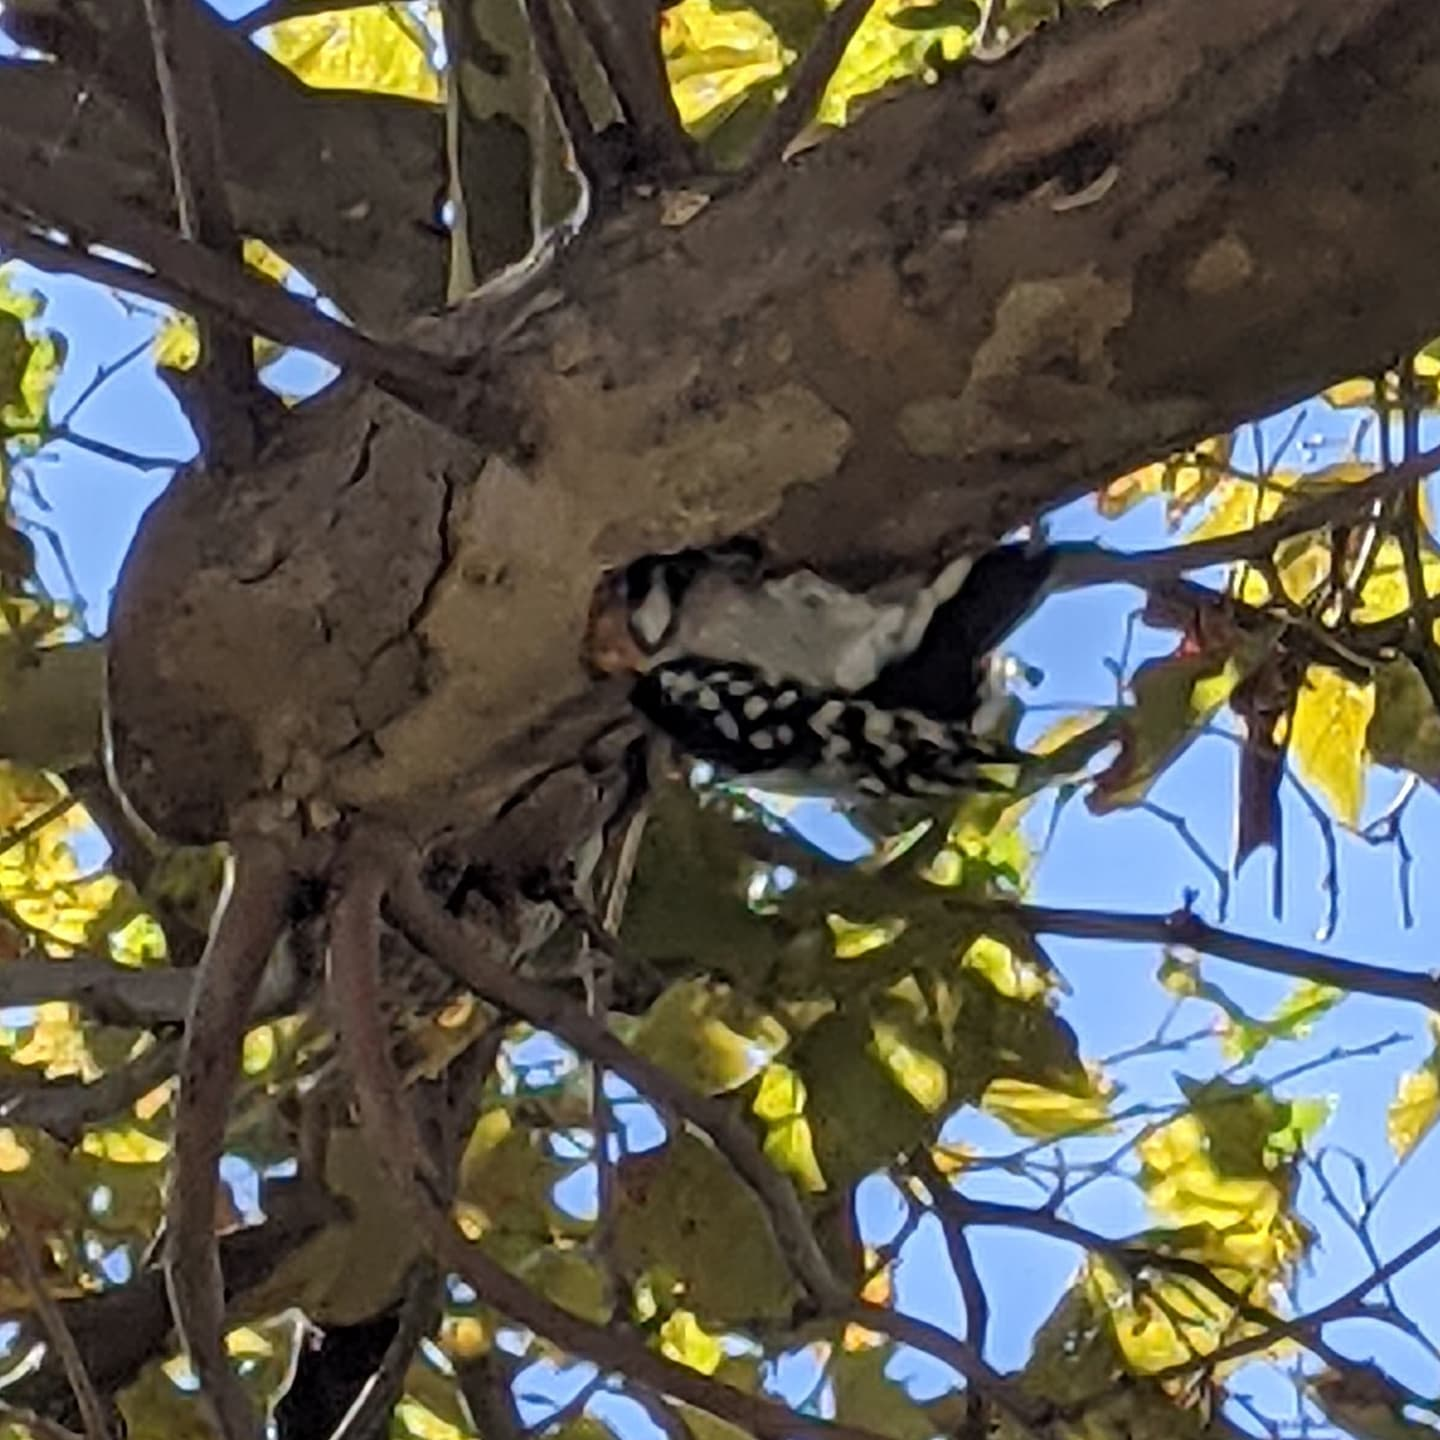 Walking around Sandusky Ohio, heard a knocking nearby. Spotted this little guy burrowing into the underside of a tree branch and couldn't resist taking a quick pic.